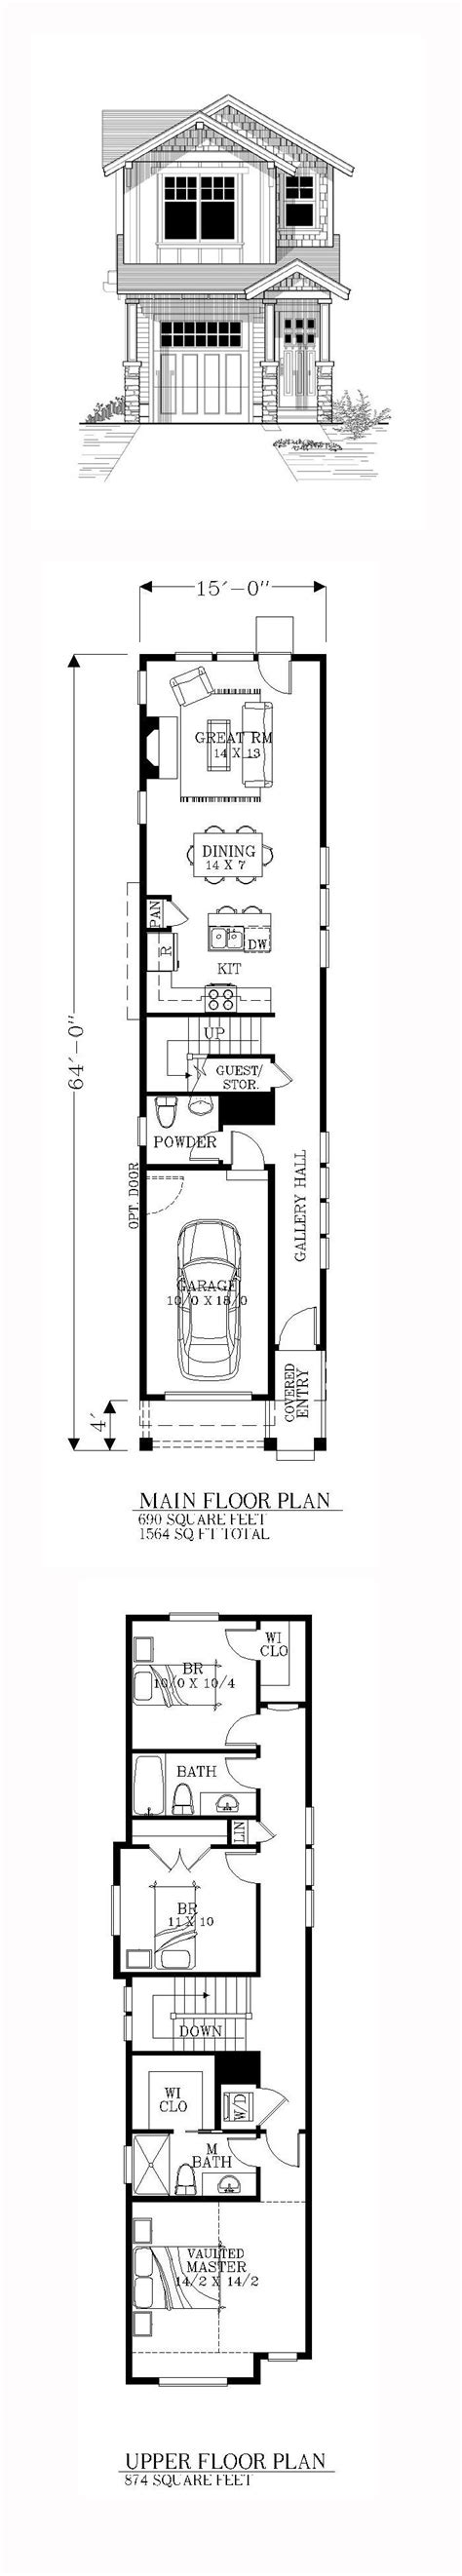 House Plans For Narrow Lot by 25 Best Ideas About Narrow House Plans On